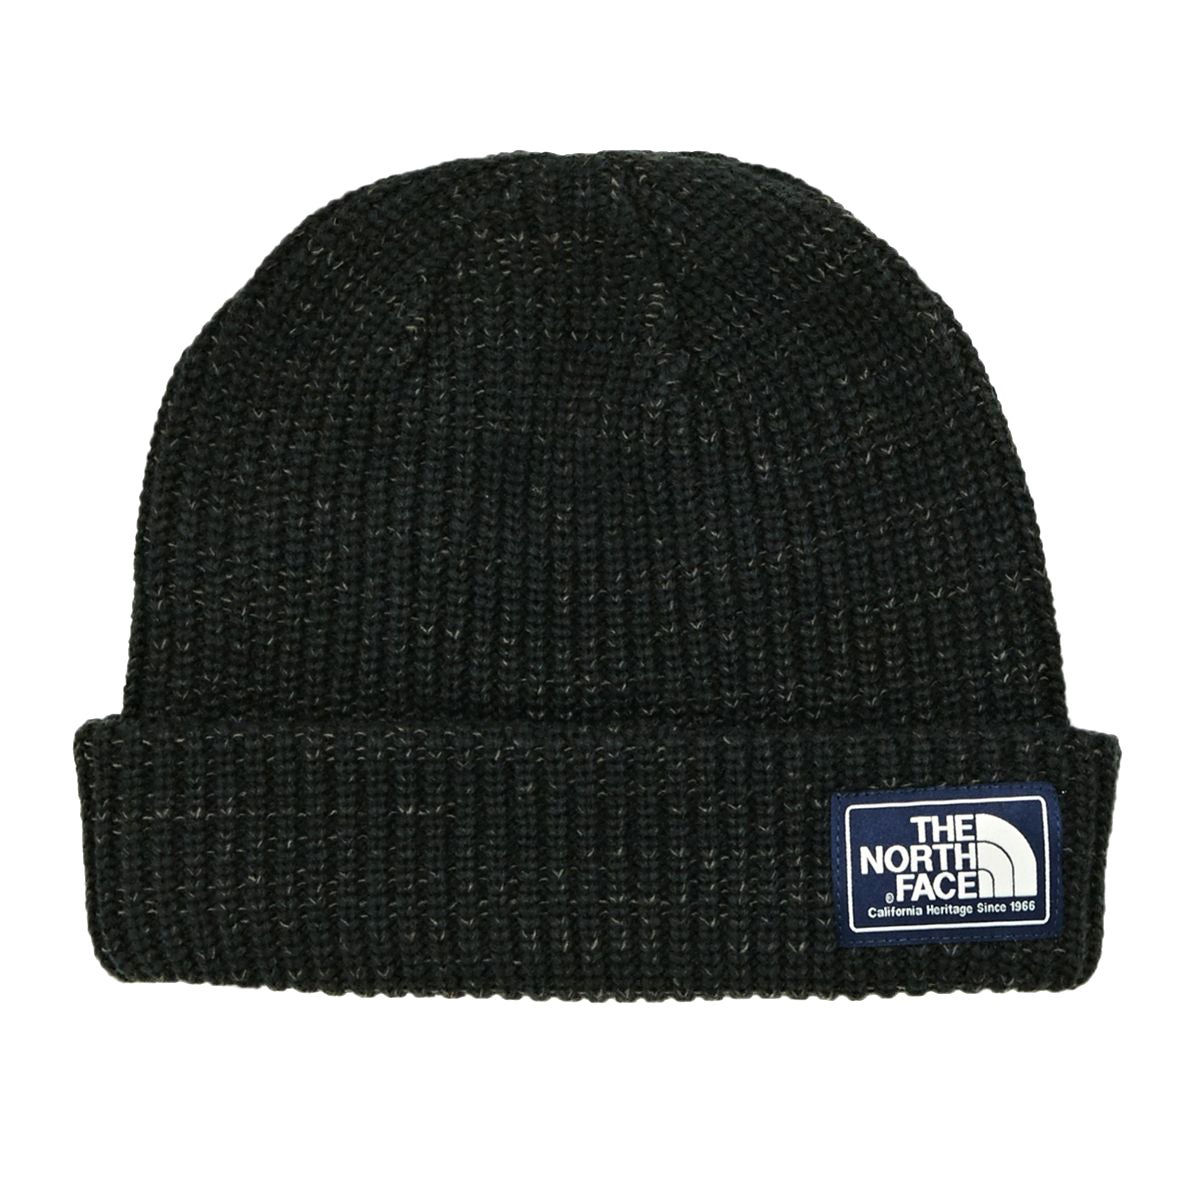 57d5f15098e The North Face Salty Dog Unisex Headwear Beanie Hat - Tnf Black One ...